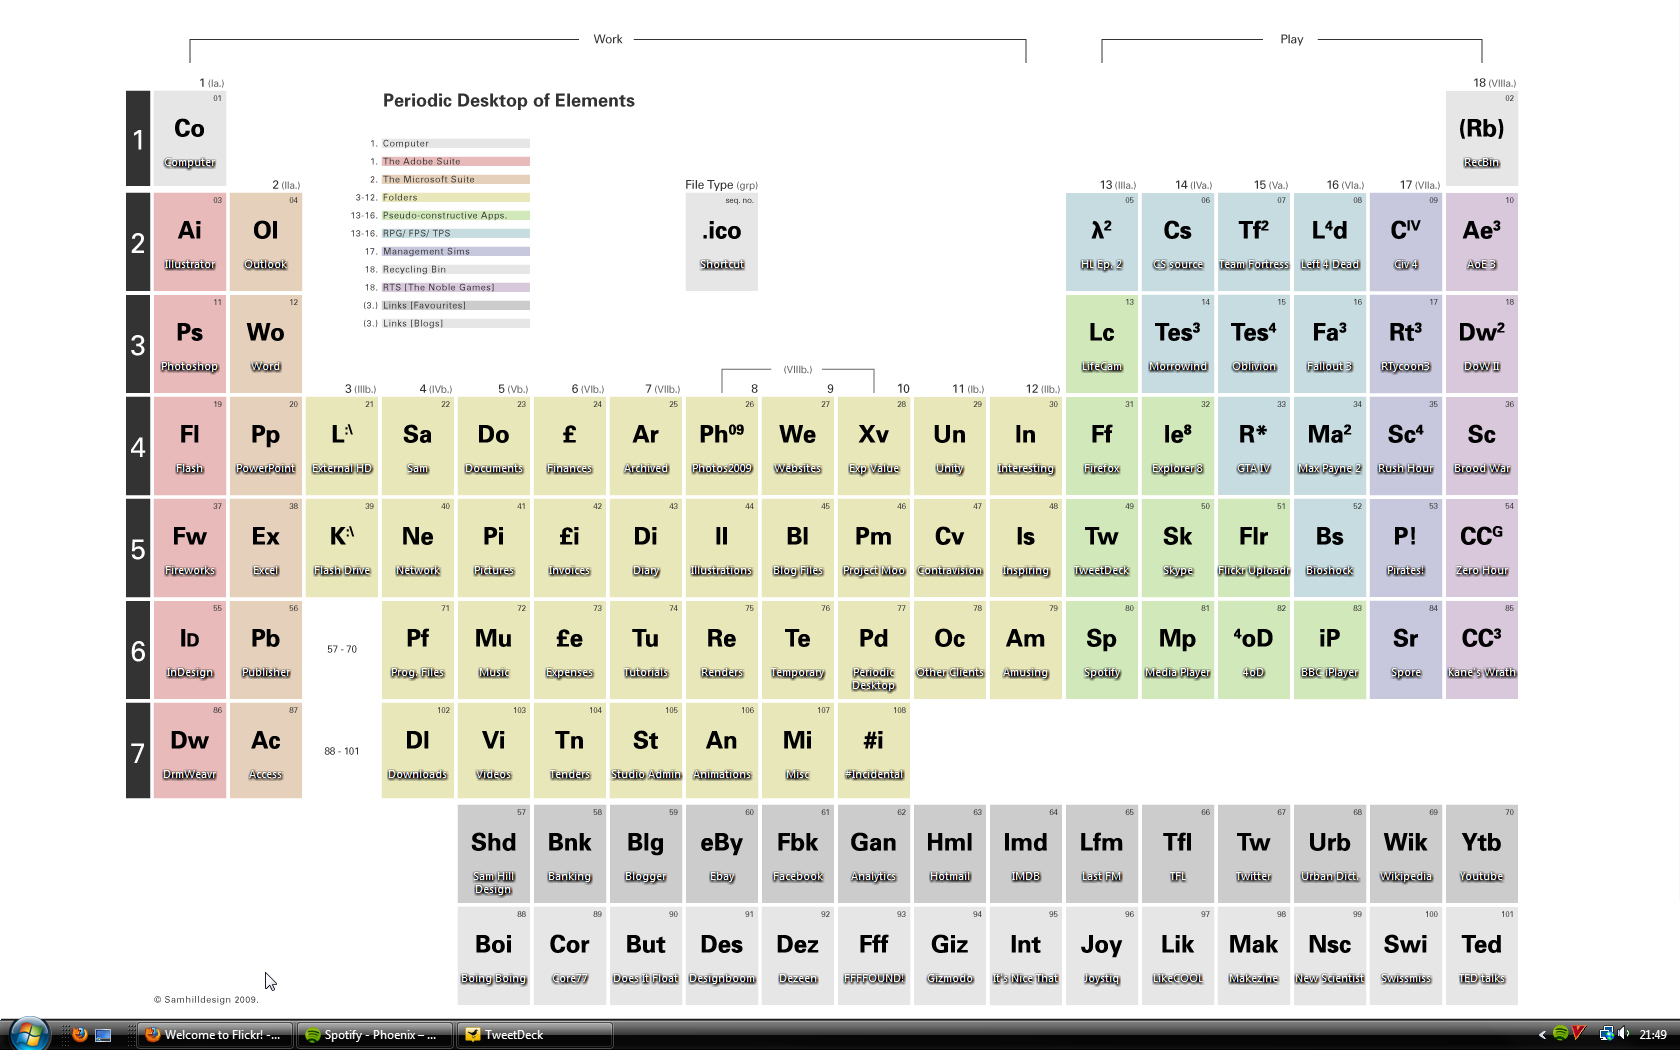 Periodic table design choice image periodic table images sam hill design periodic desktop of the elements periodic desktop of the elements in use gamestrikefo gamestrikefo Choice Image